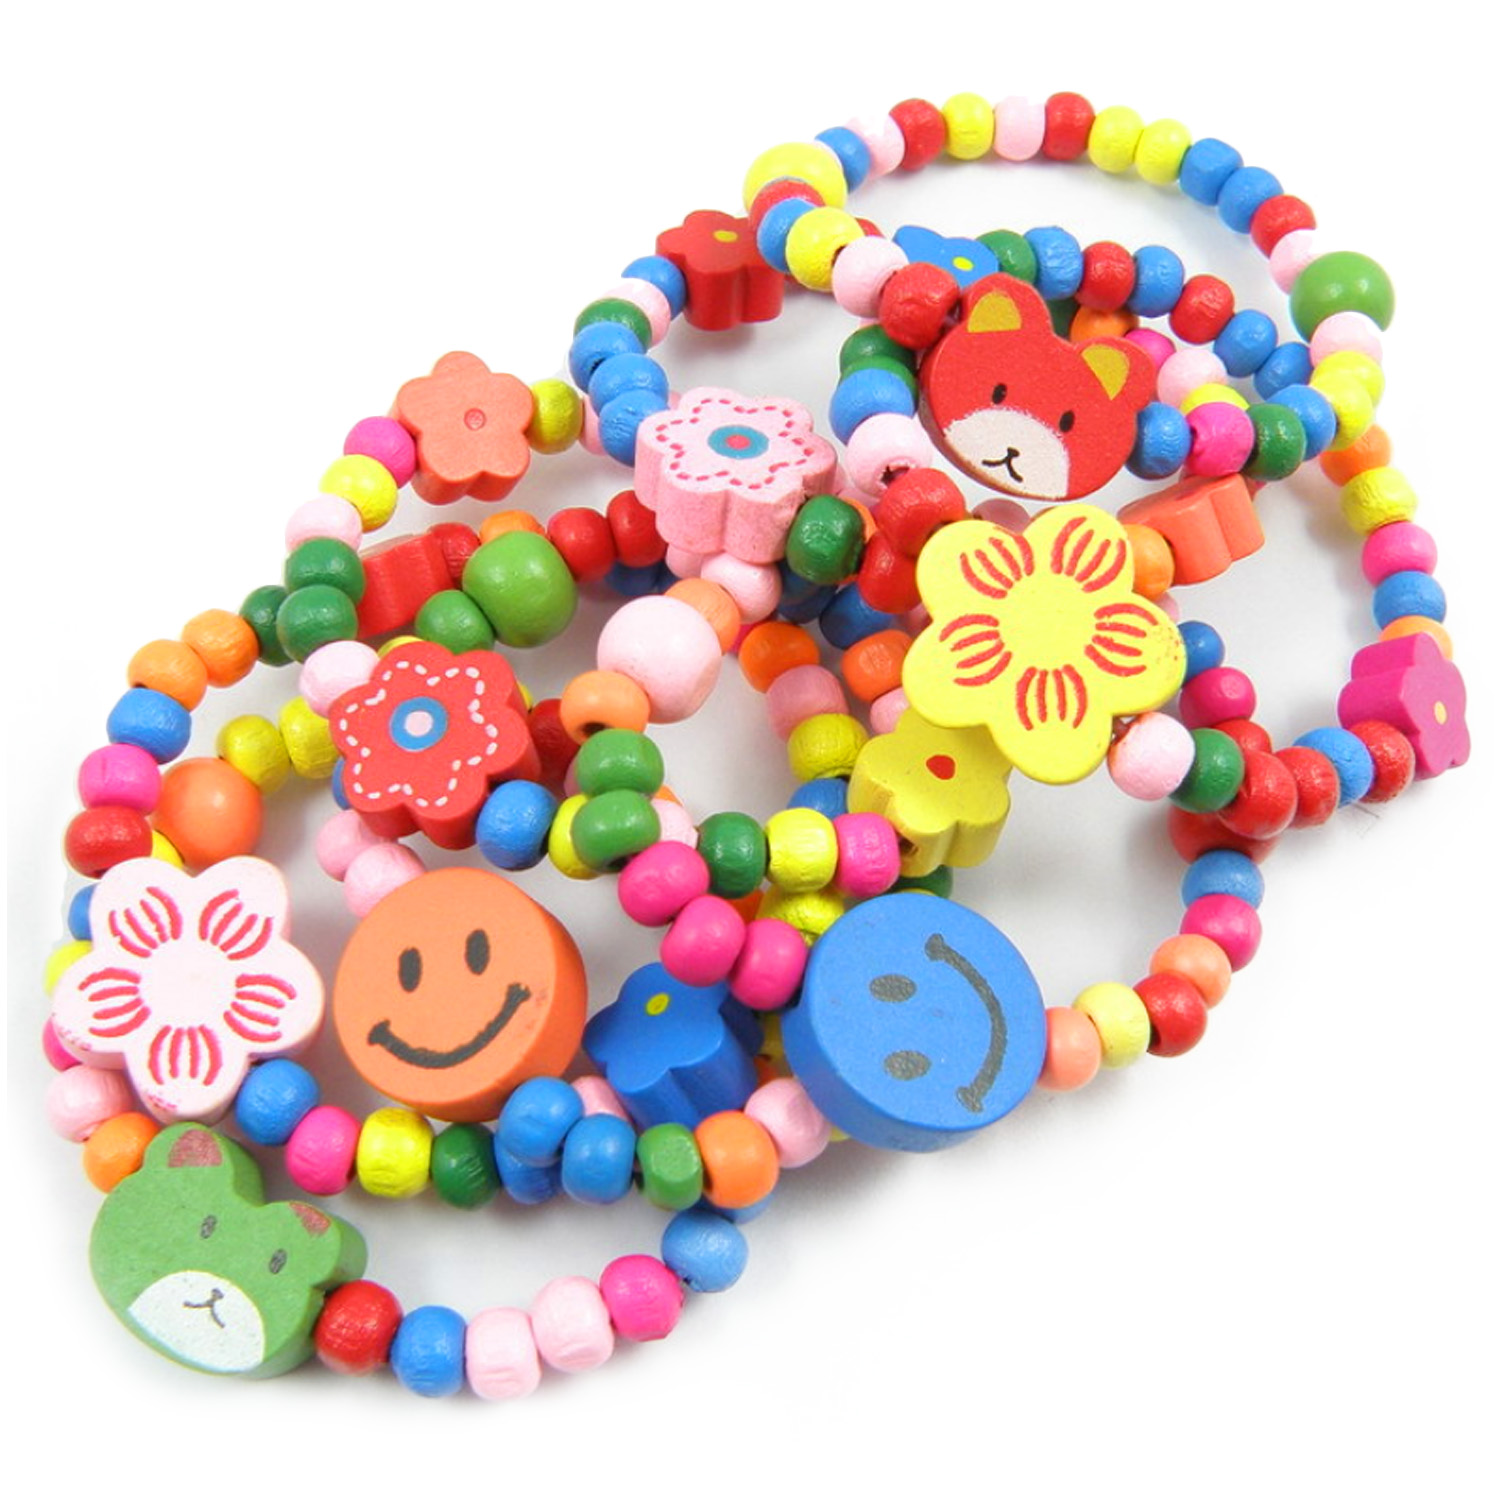 Kids DIY Crafts Toy 12Pcs Assorted Style Cute Candy Color Wooden Beading Bracelets DIY Toys For Kids Children Favor Holiday Gift